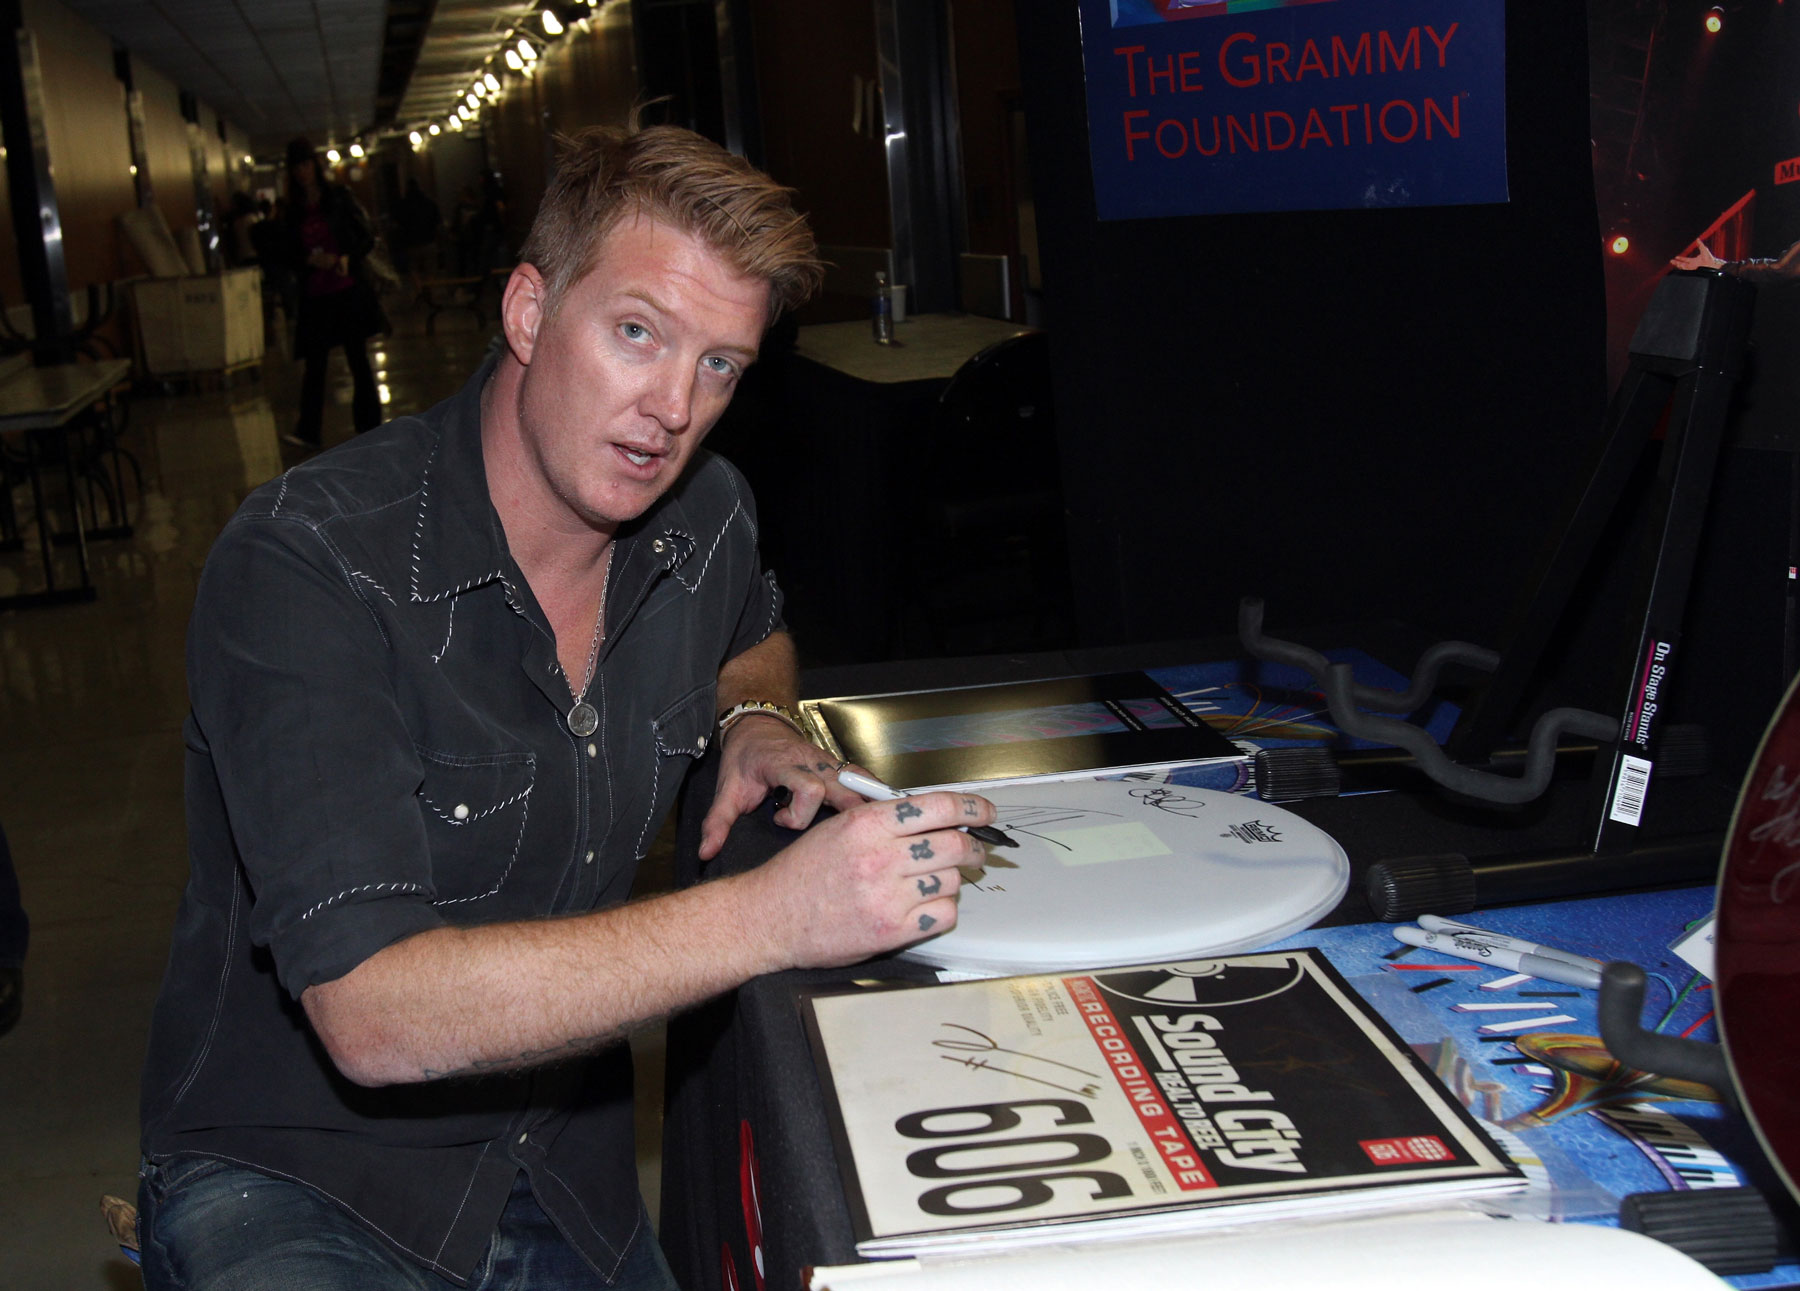 Josh Homme on 'F–k the Grammys' Comment: 'I Was Really Drunk'